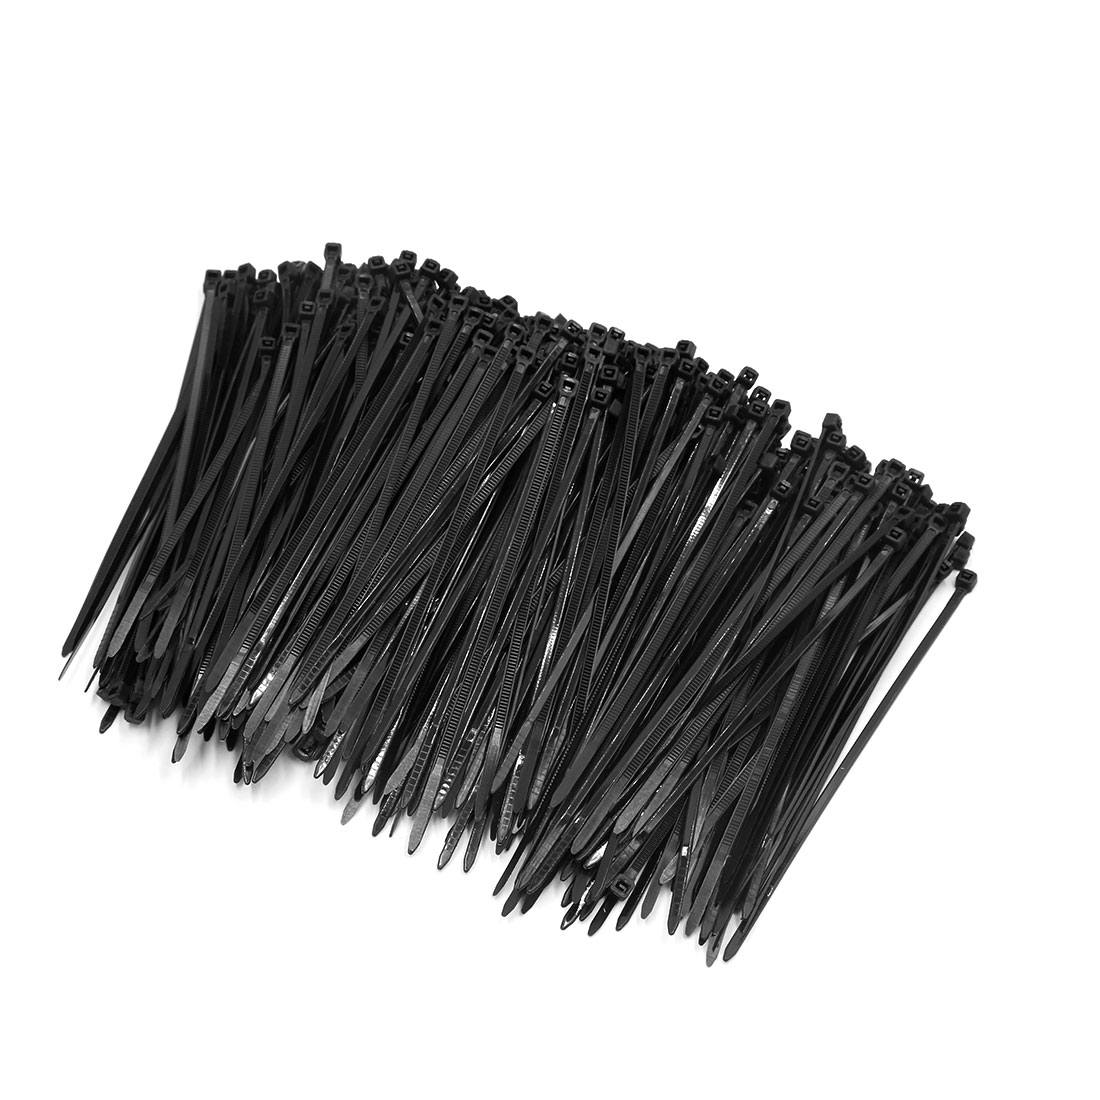 500pcs Black 4mm x 150mm Nylon Fasten Self Locking Cable Wire Tie for Car Vehicle